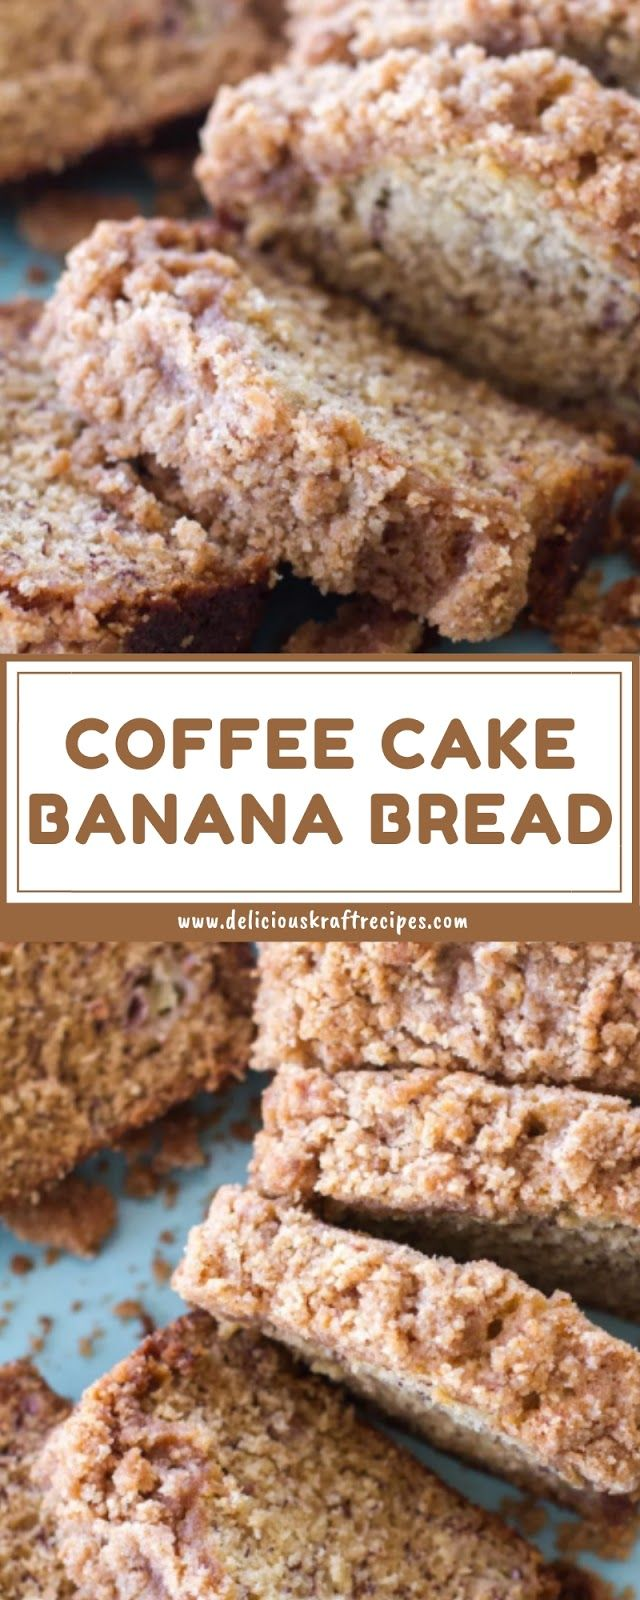 Coffee Cake Banana Bread Coffee Cake Banana Bread Foodrecipeseasy Banana Coffee Cakes Coffee Cake Coffee Cake Recipes